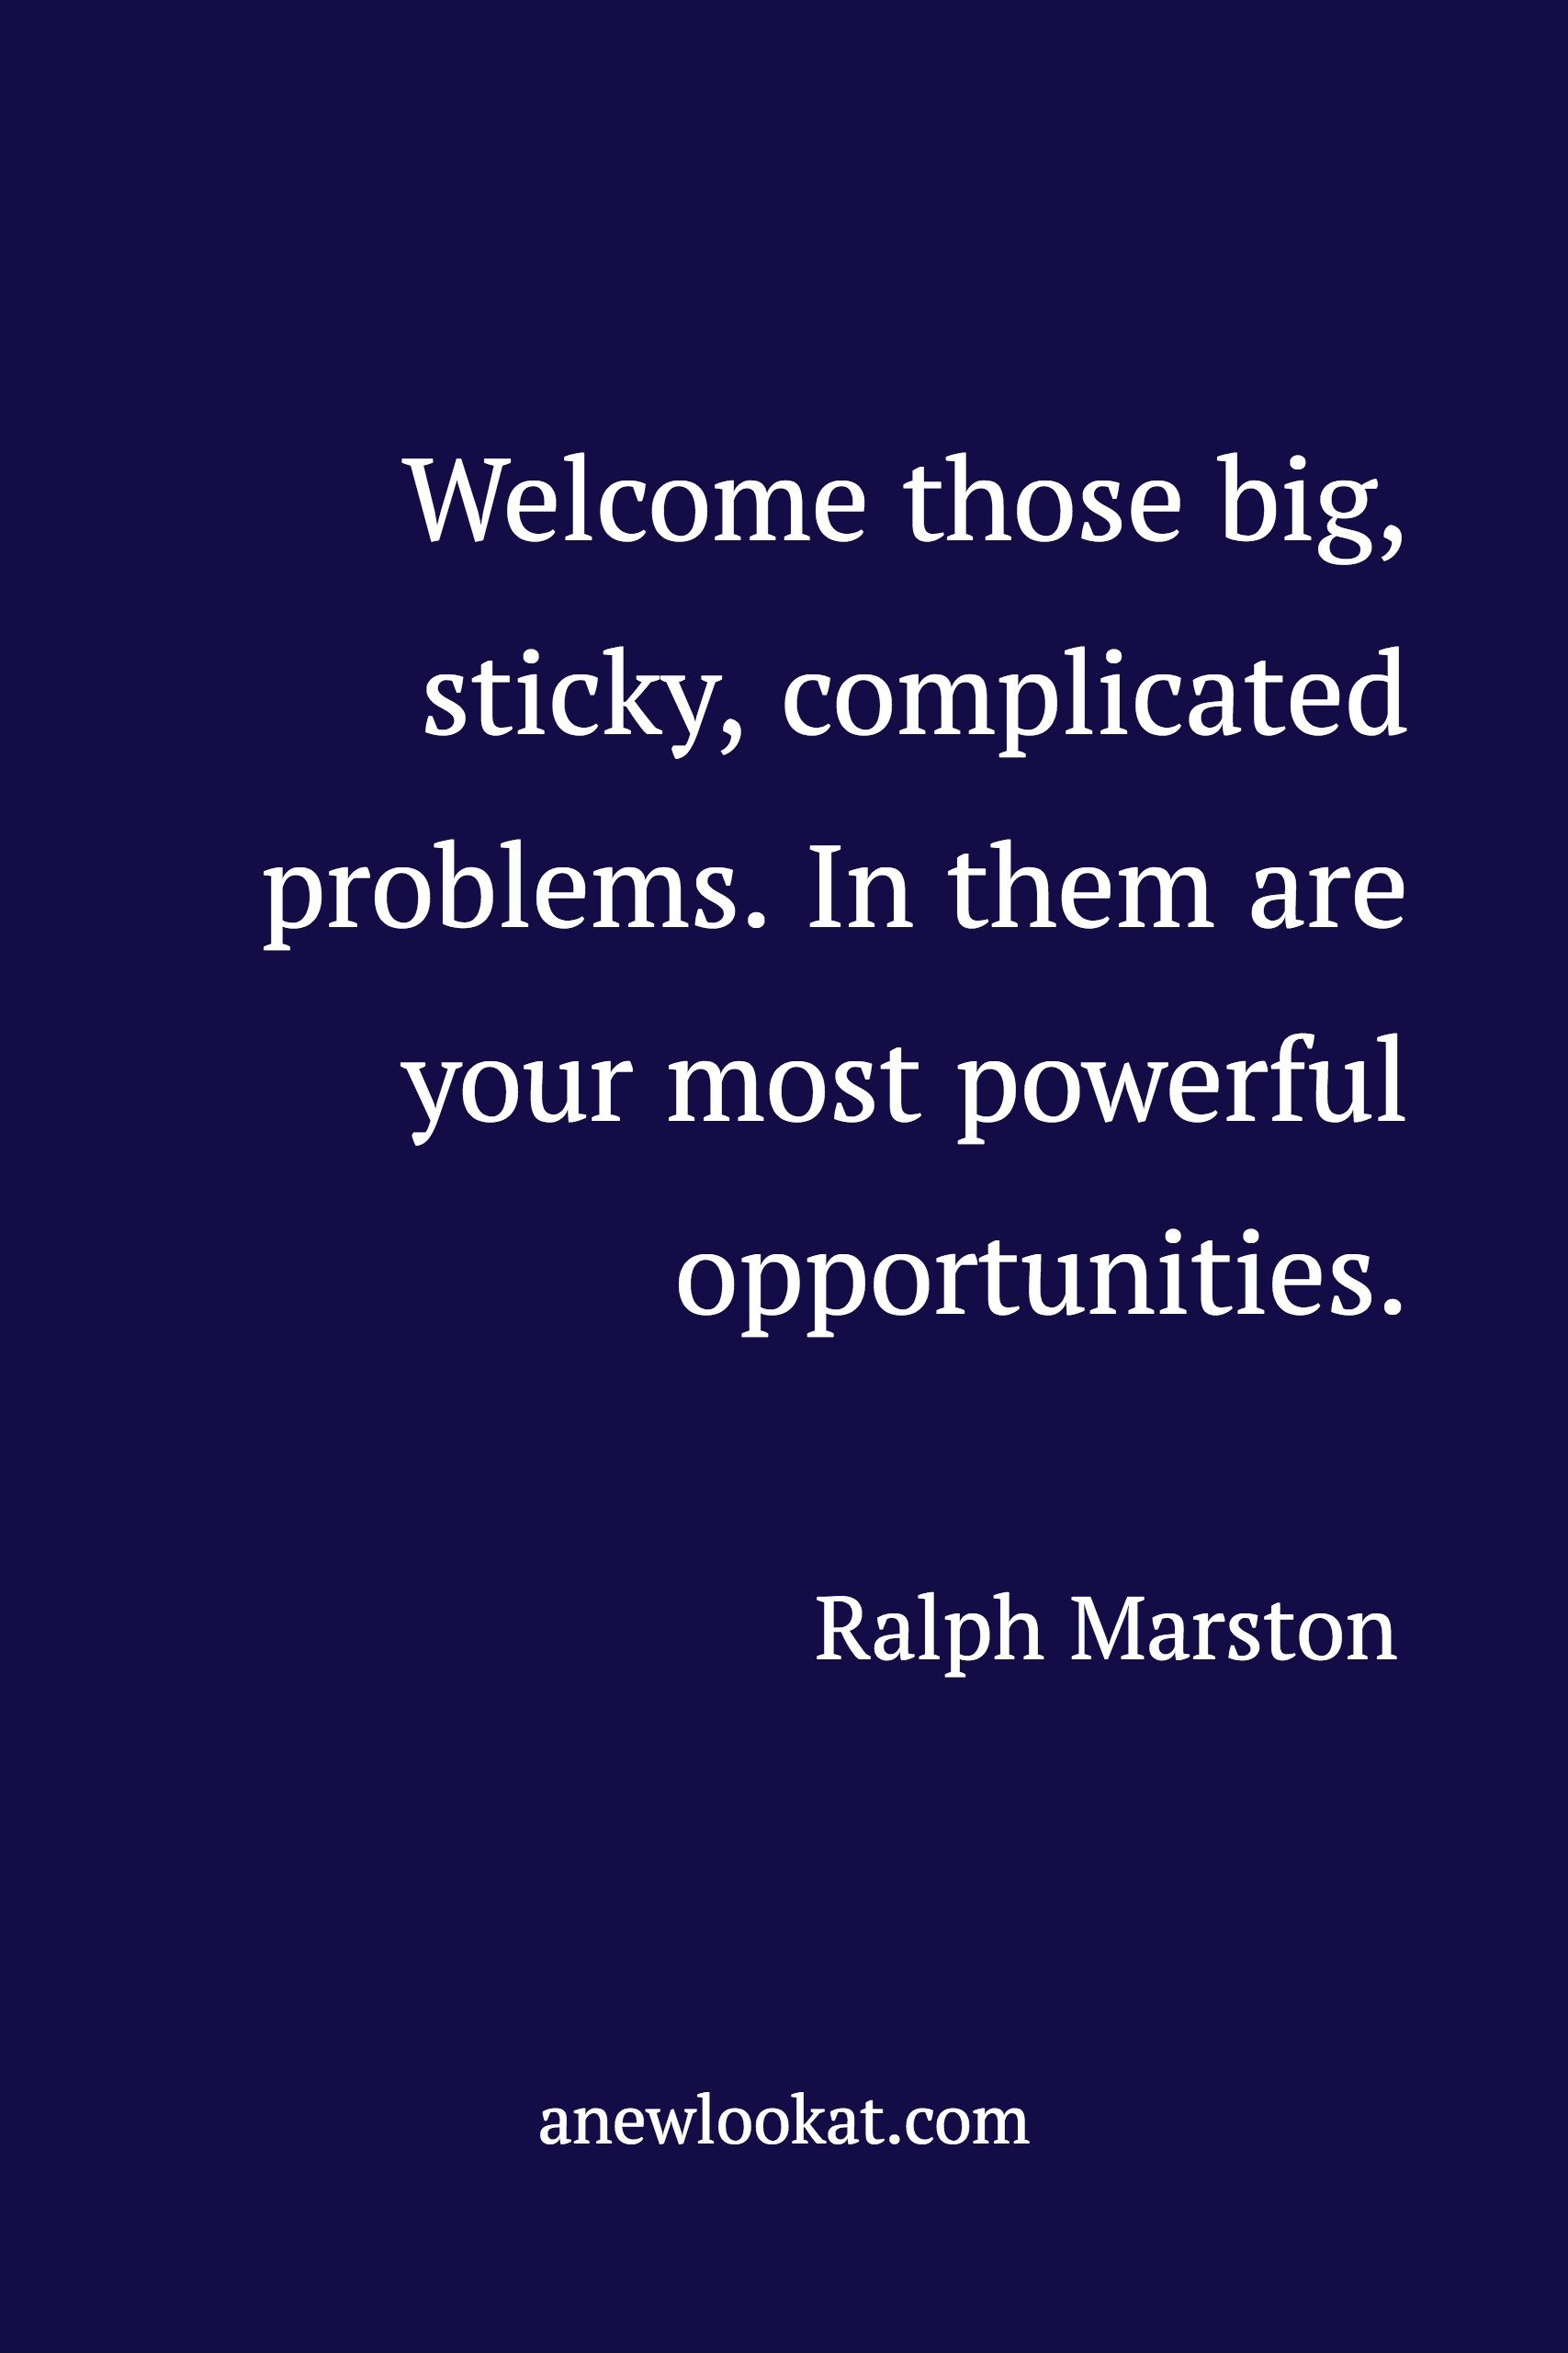 Ralph Marston Quote Inspirational Quotes Quotes By People Sales Motivation Quotes Choices Quotes